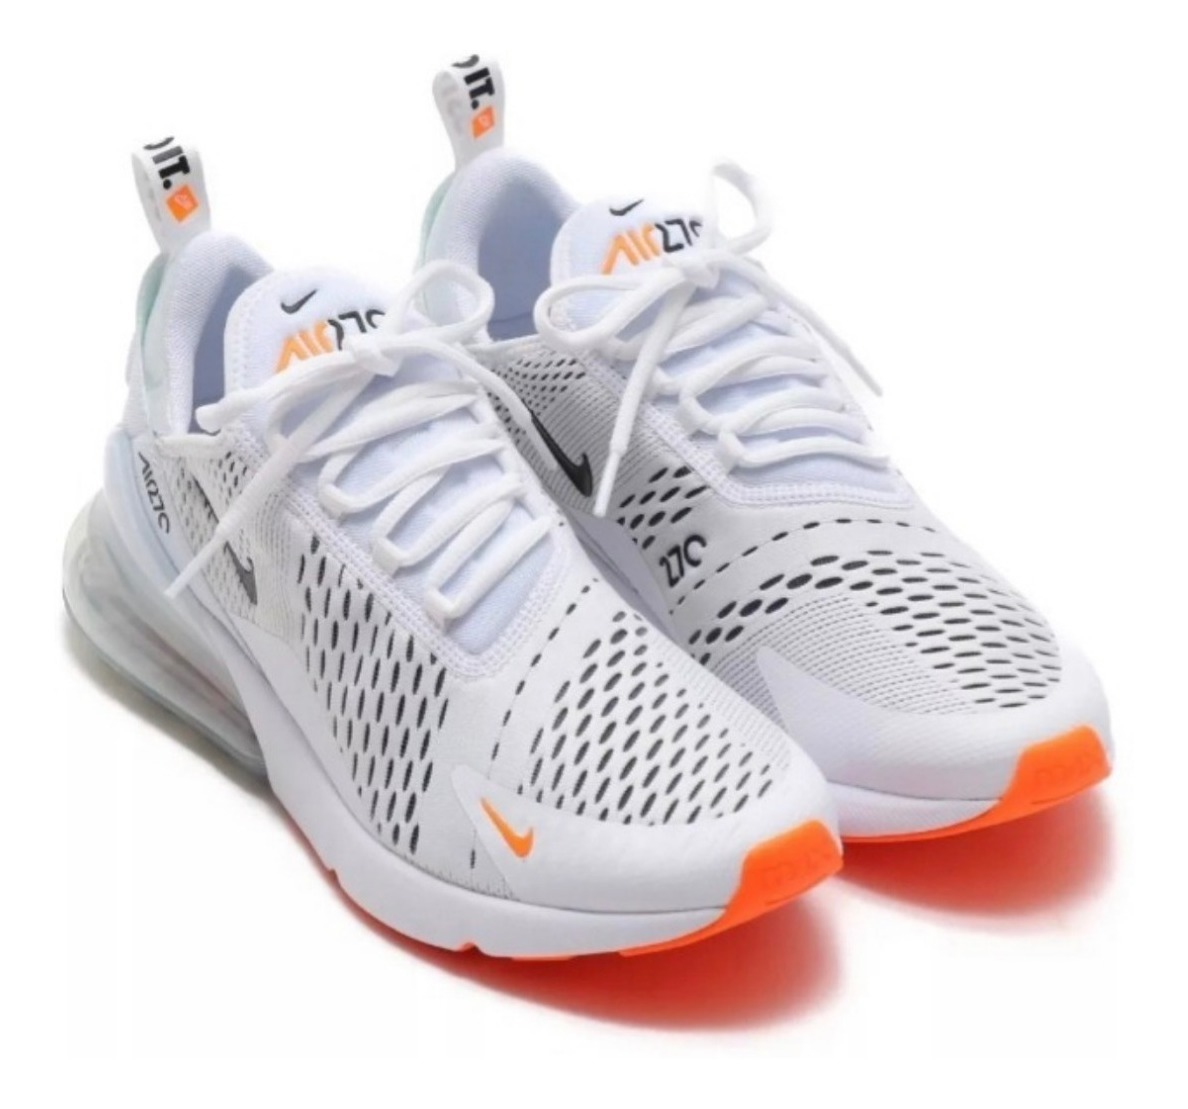 new styles 316ef 82ce9 Tenis Oferta Nike Air 270 Just Do It Blanco 2019